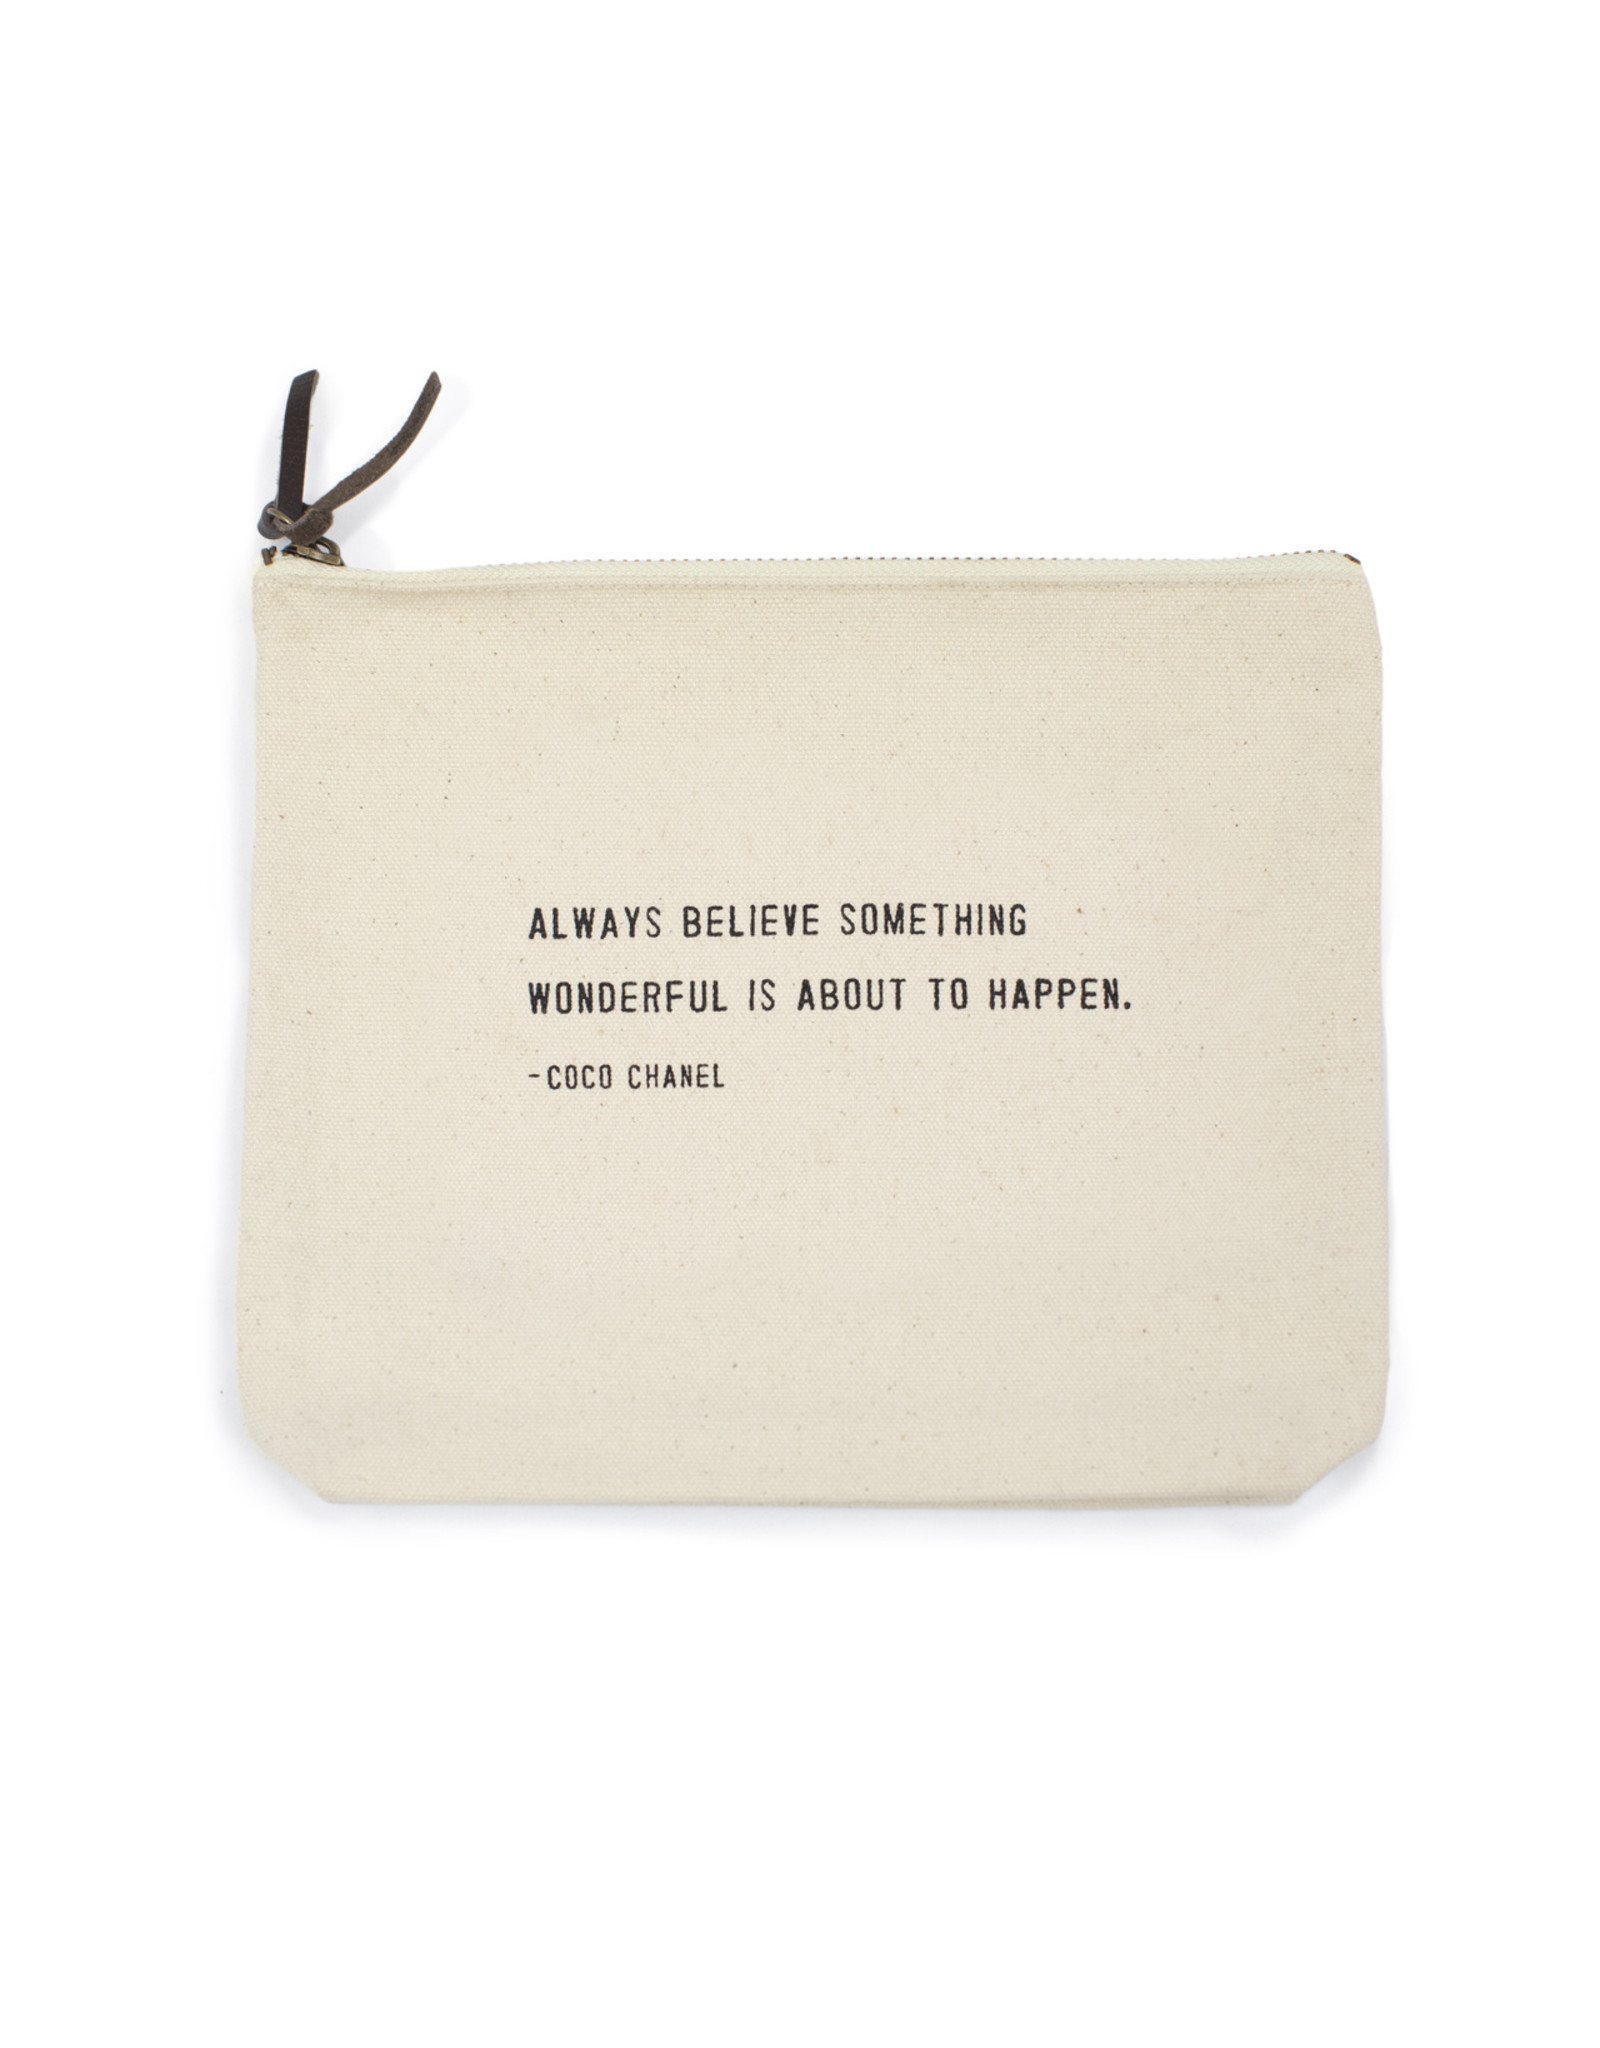 Canvas Bag, Coco Chanel, Always Believe Something